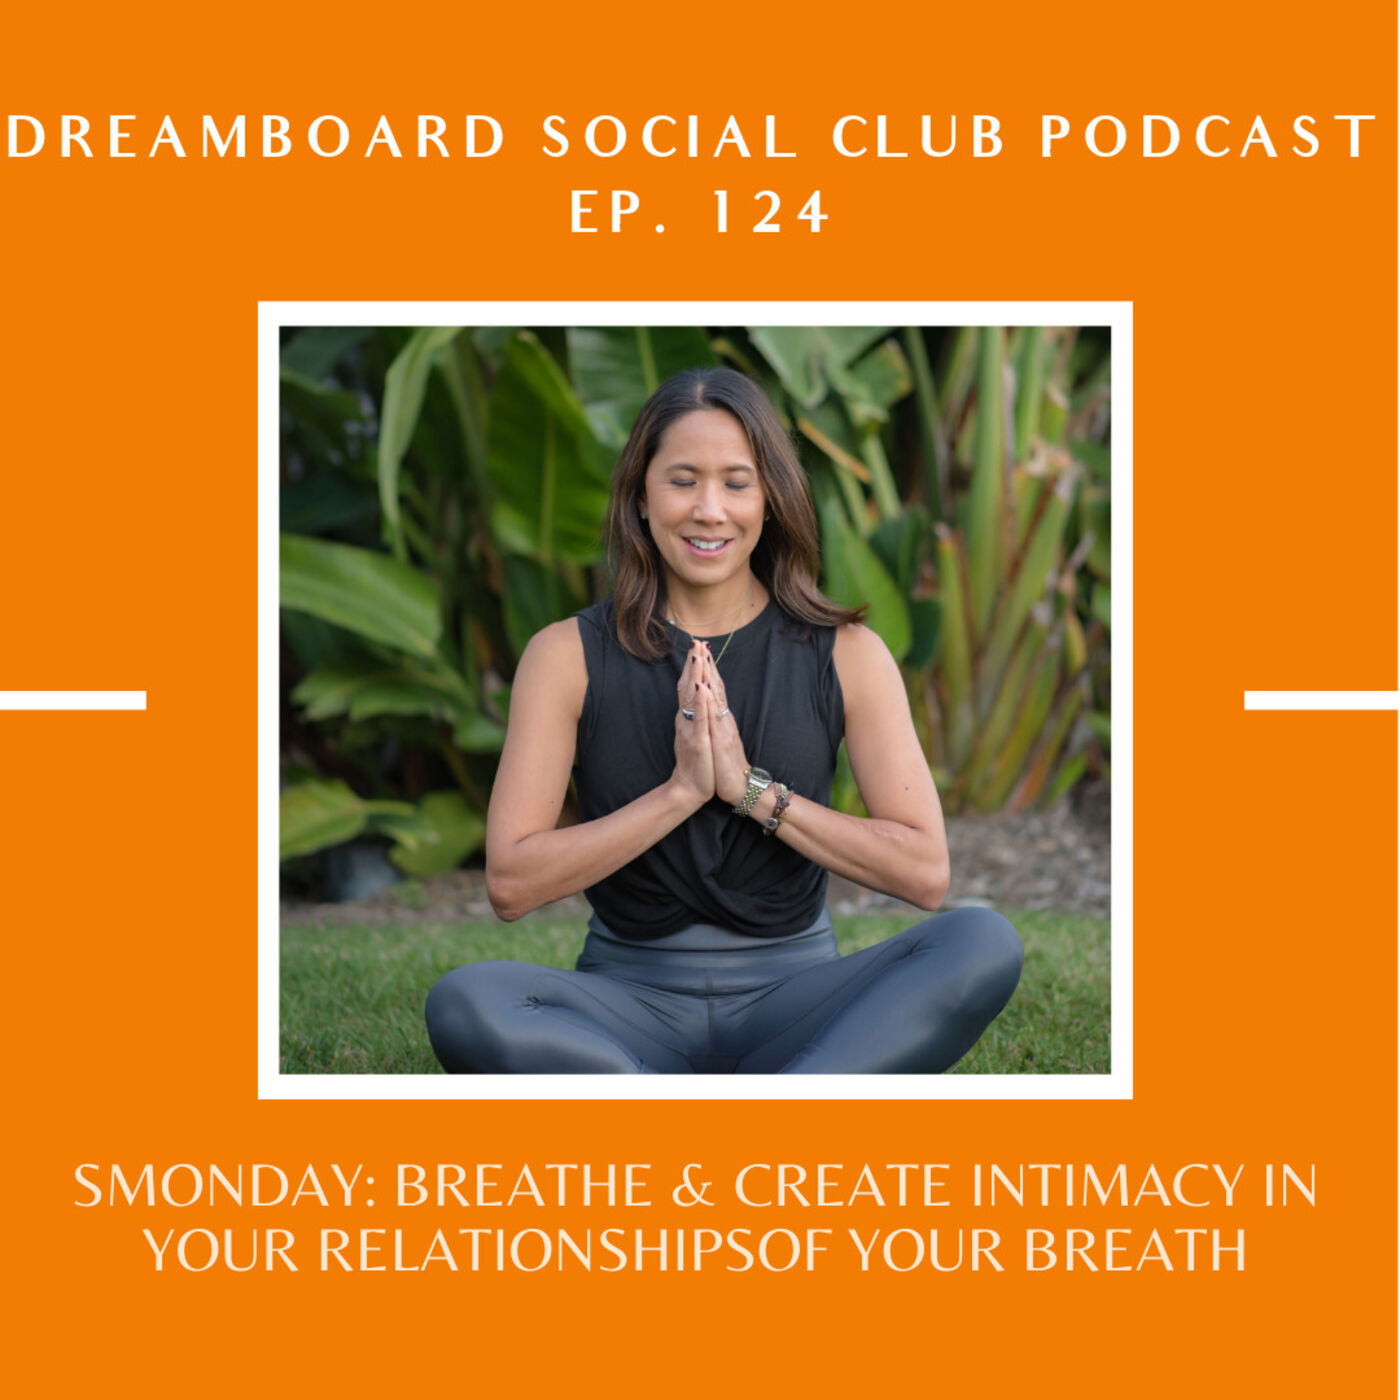 Smonday: Breathe & Create Intimacy in Your Relationships